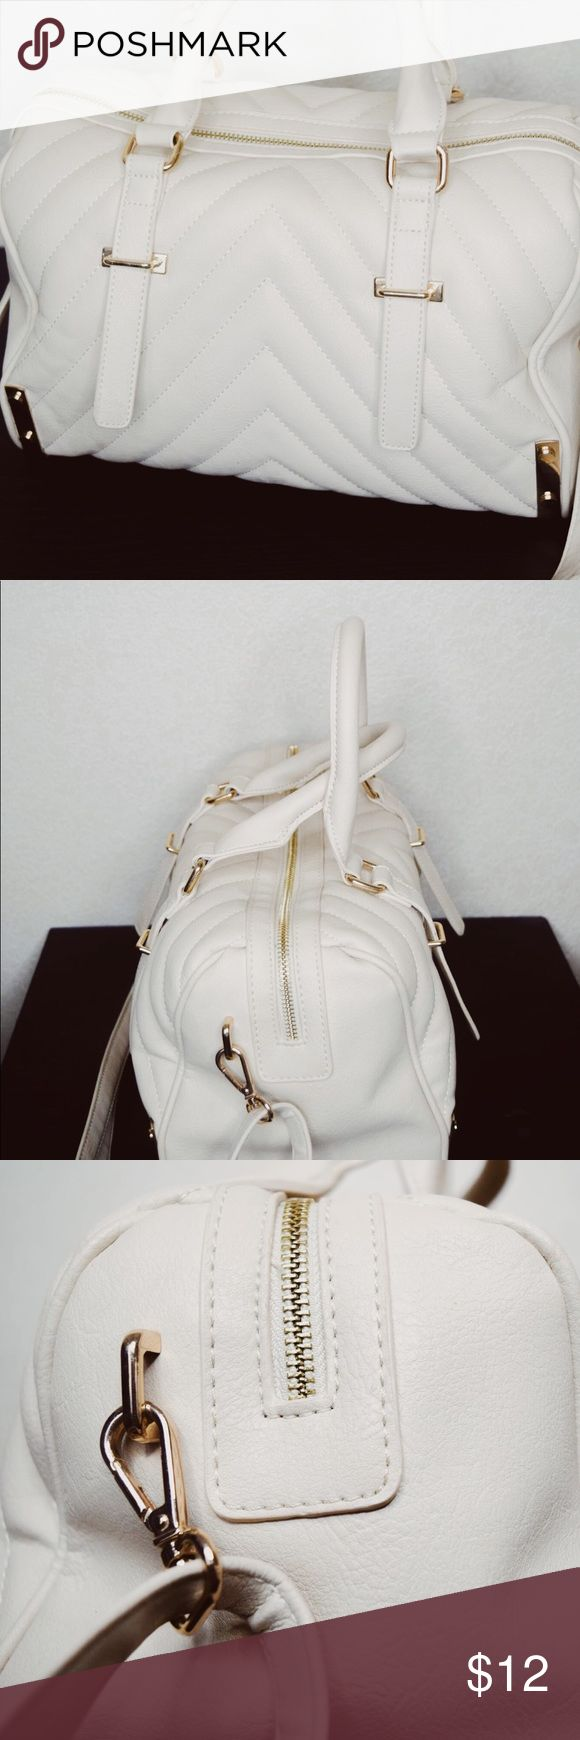 Super Cute Charming Charlie Off-White Handbag This off-white Handbag purchased at Charming Charlie's is perfect for the upcoming spring season! This neutral purse will pair perfectly with almost every outfit you pair it with and has all the space you need for your on-the-go essentials! Charming Charlie Bags Shoulder Bags